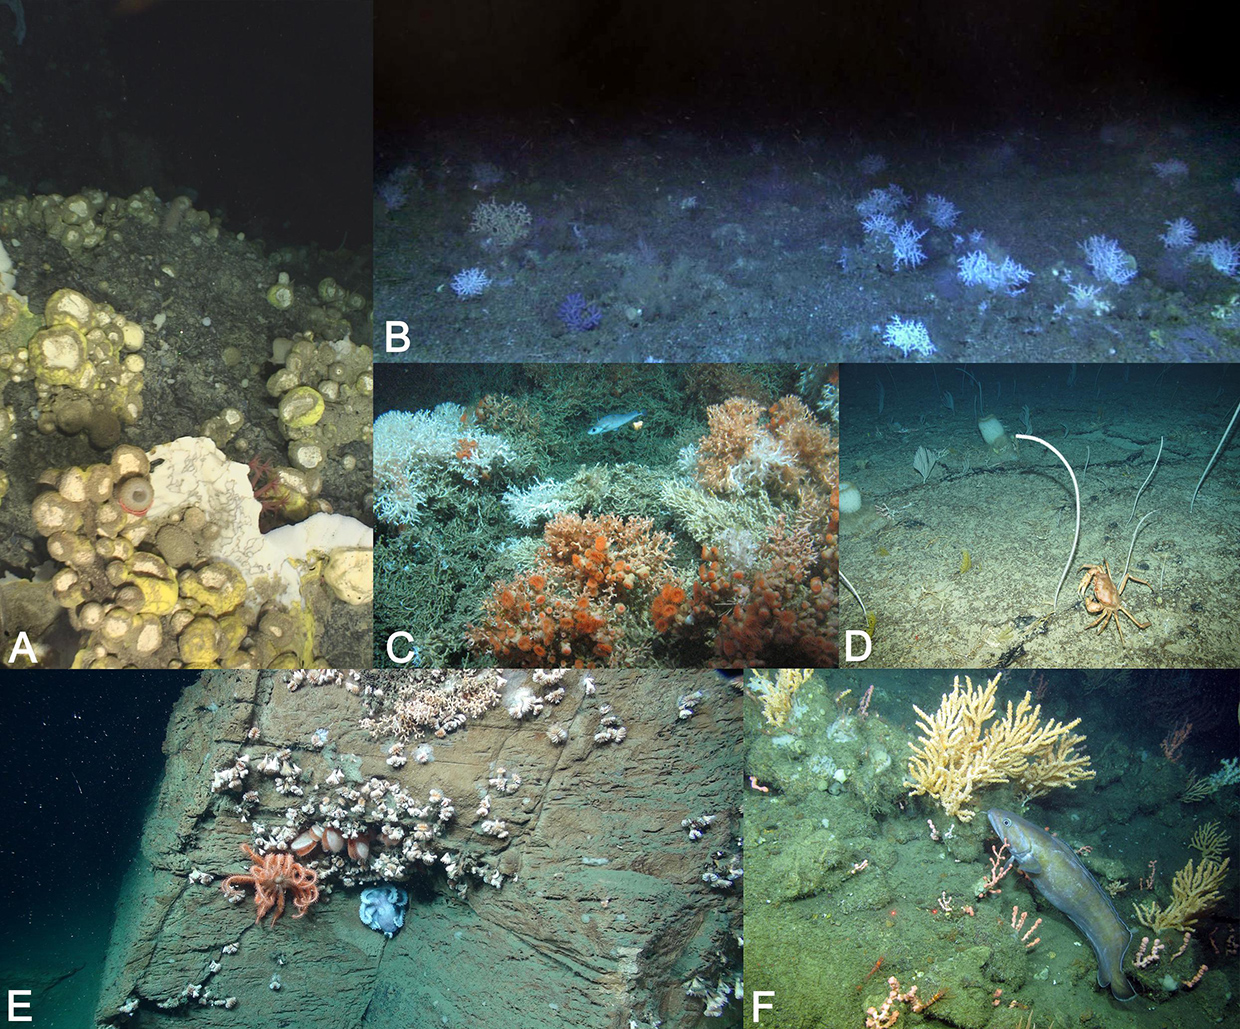 Diversidad de los ecosistemas marinos vulnerables. Imágenes: (A) Department of Fisheries and Oceans, Canada. (B) Indemares project. (C) J.M. Roberts, University of Edinburgh. (D) Atlas project. (E-F) Steve Ross, University of North Carolina Wilmington